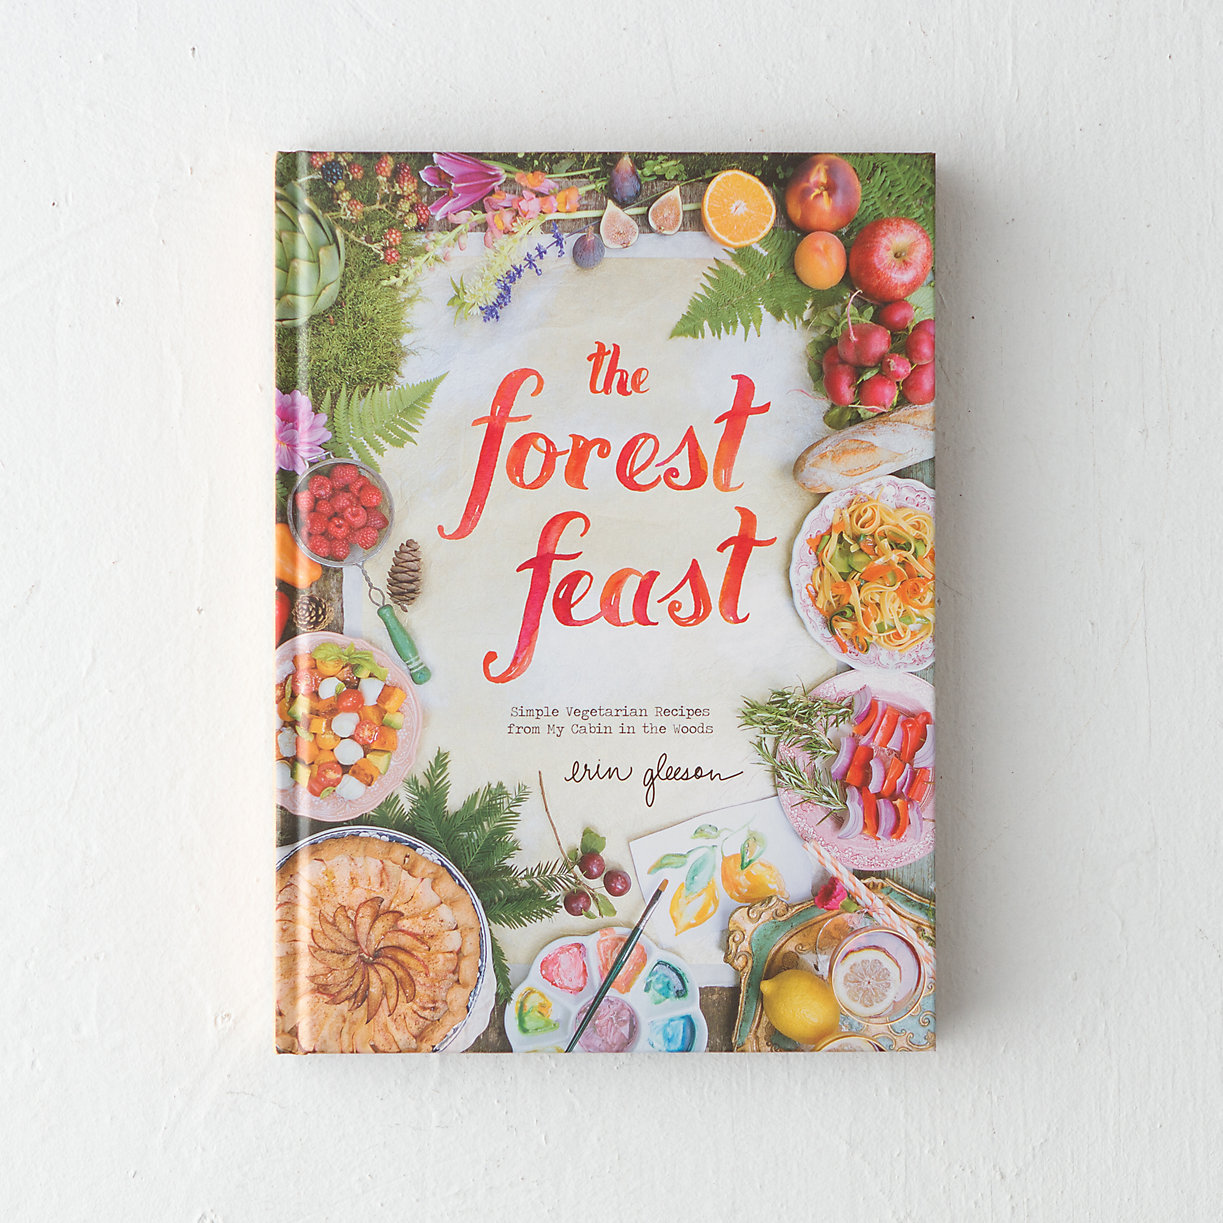 The Forrest Feast Cookbook